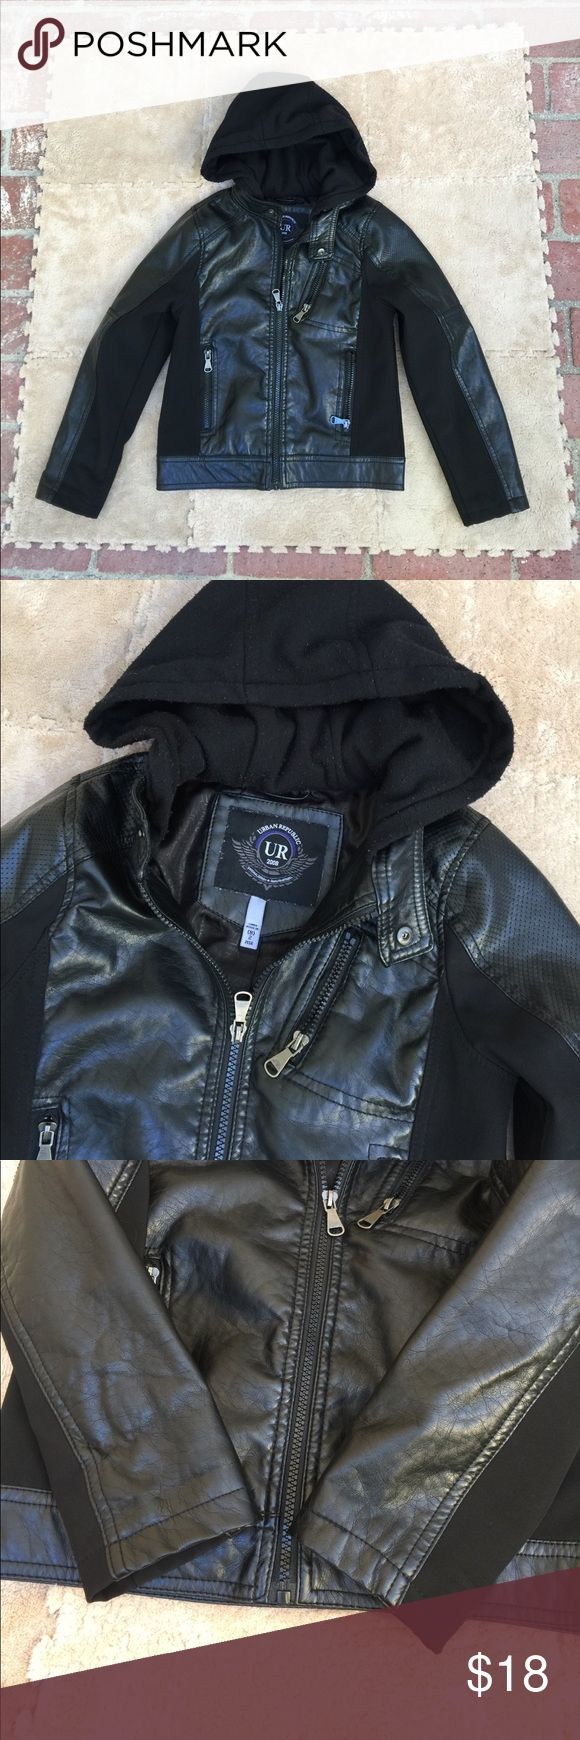 Boy's Moto Jacket Boy's Urban Republic Moto Jacket, size S, size 8. Mix of fabrics, feels like real leather but is faux leather, see photo 7 for fabric descriptions. 3 outer zipper pockets and one inner pocket. Soft Fabric hood with some minor piling, see photos 2, 4 and 5 for reference. Great gently loved condition, no holes, rips, tears or stains.  SAVE 20% when you bundle 3 or more listings in my closet. Urban Republic Jackets & Coats